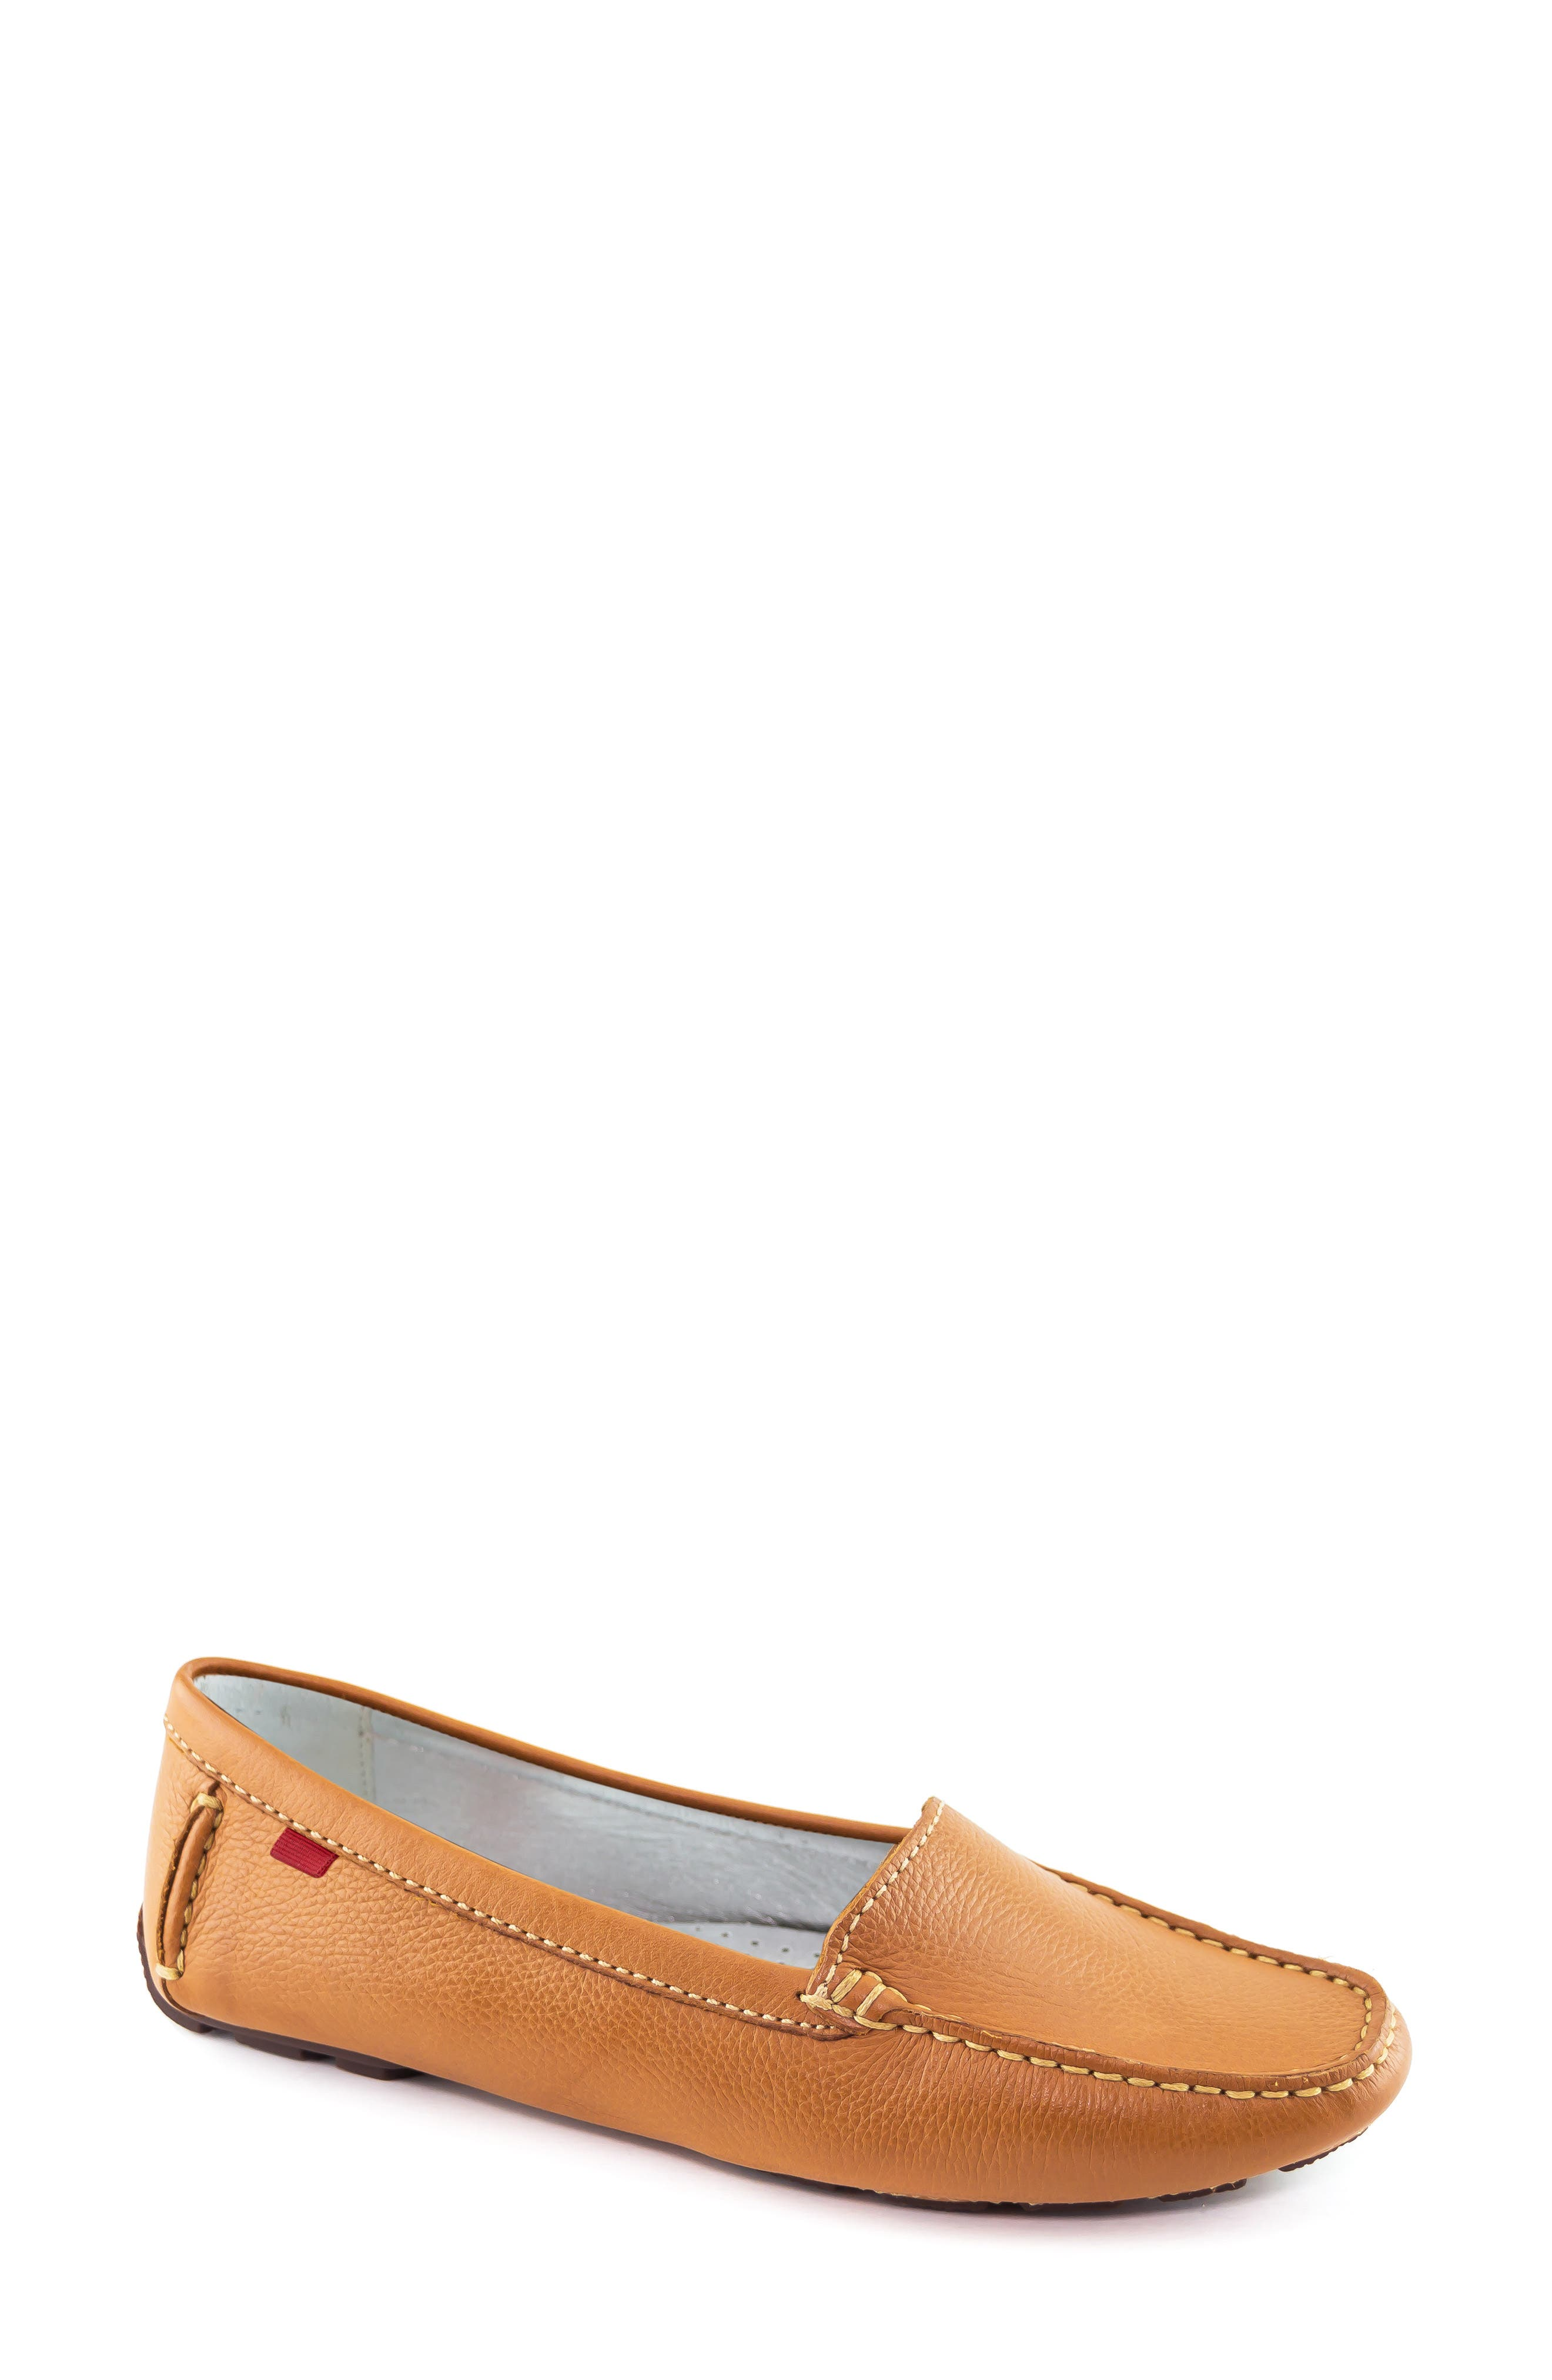 MARC JOSEPH NEW YORK Manhasset Loafer, Main, color, TAN/ NATURAL LEATHER